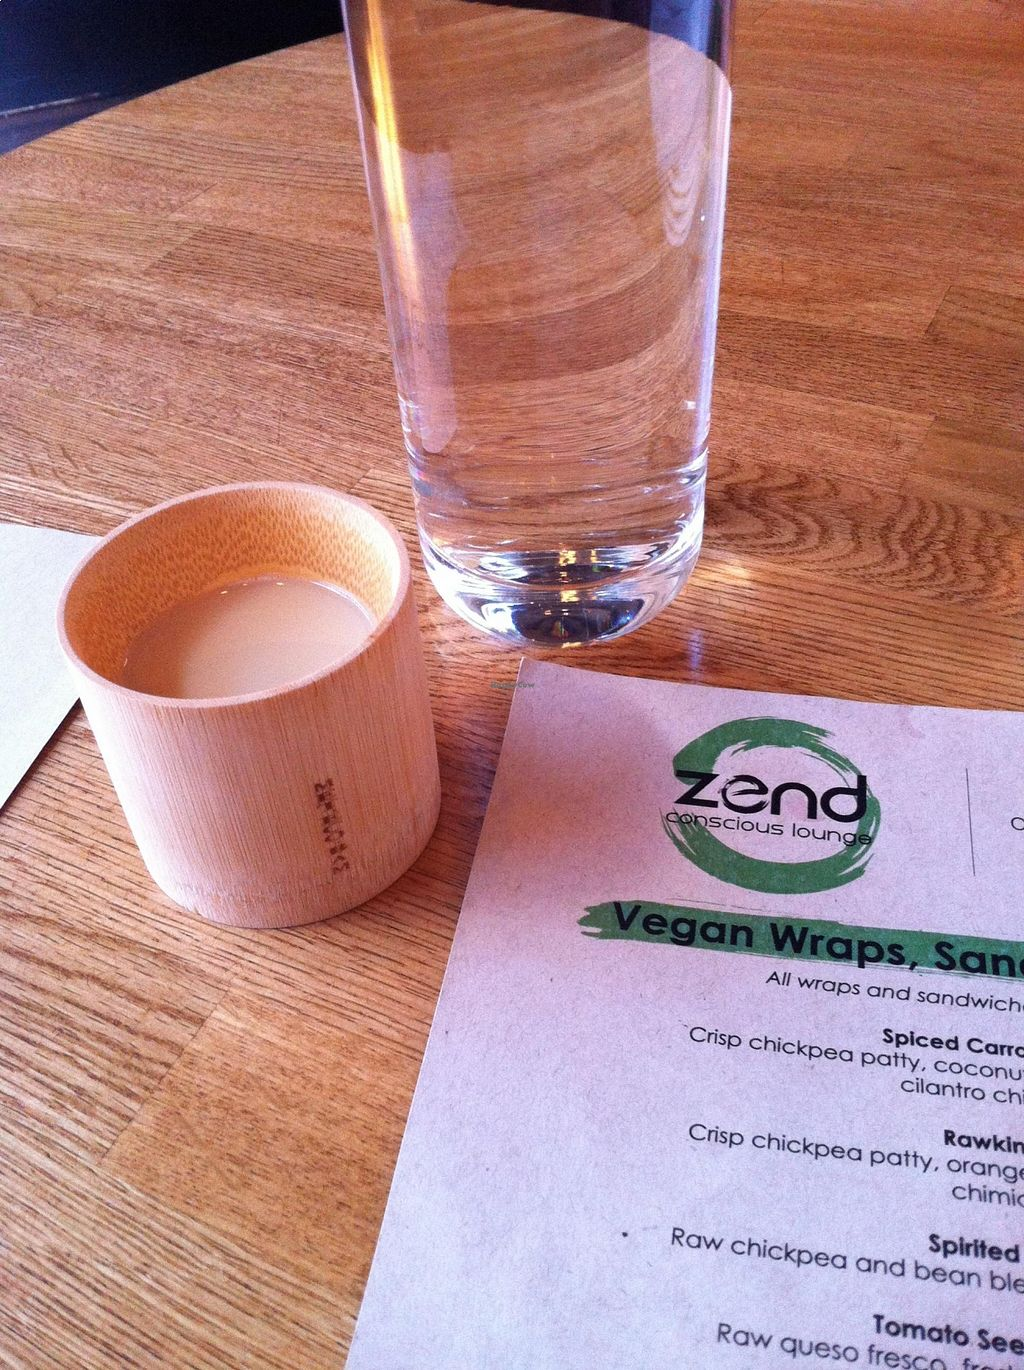 "Photo of Zend Conscious Lounge  by <a href=""/members/profile/vegan%20frog"">vegan frog</a> <br/>Zend signature drink <br/> August 22, 2015  - <a href='/contact/abuse/image/60722/114755'>Report</a>"